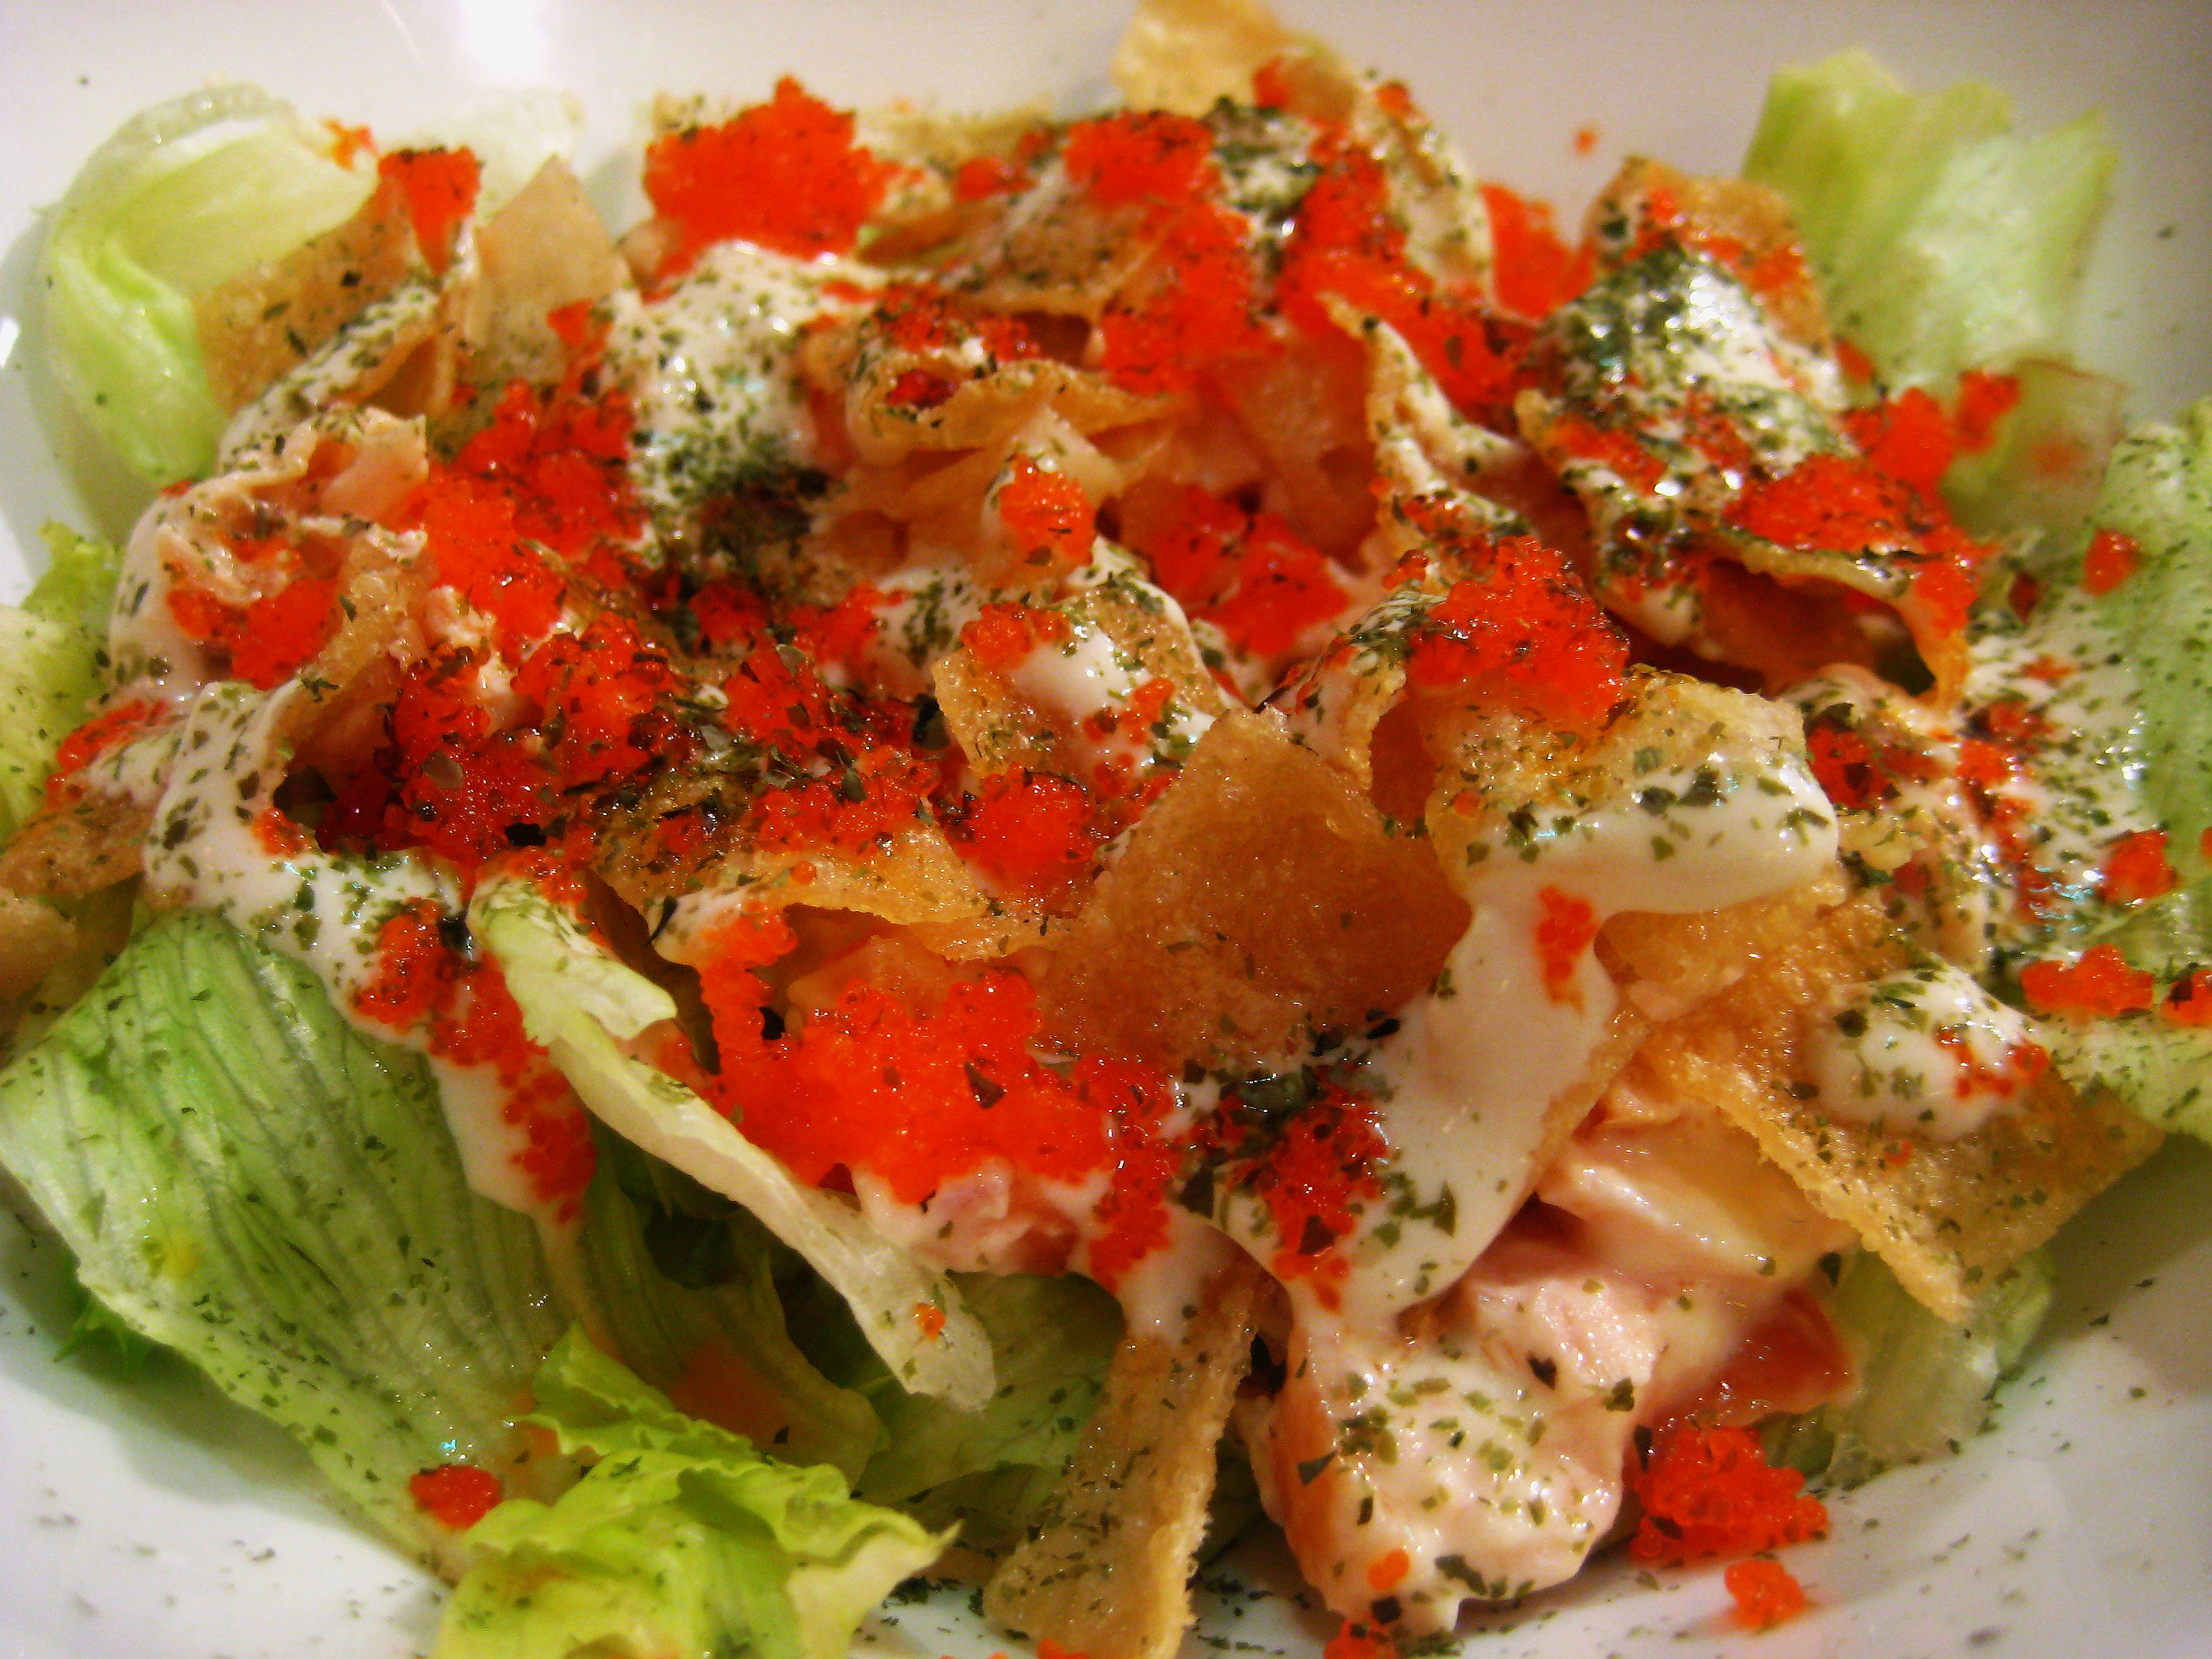 Teriyaki Boy's Crunchy Salmon Salad Japanese Food